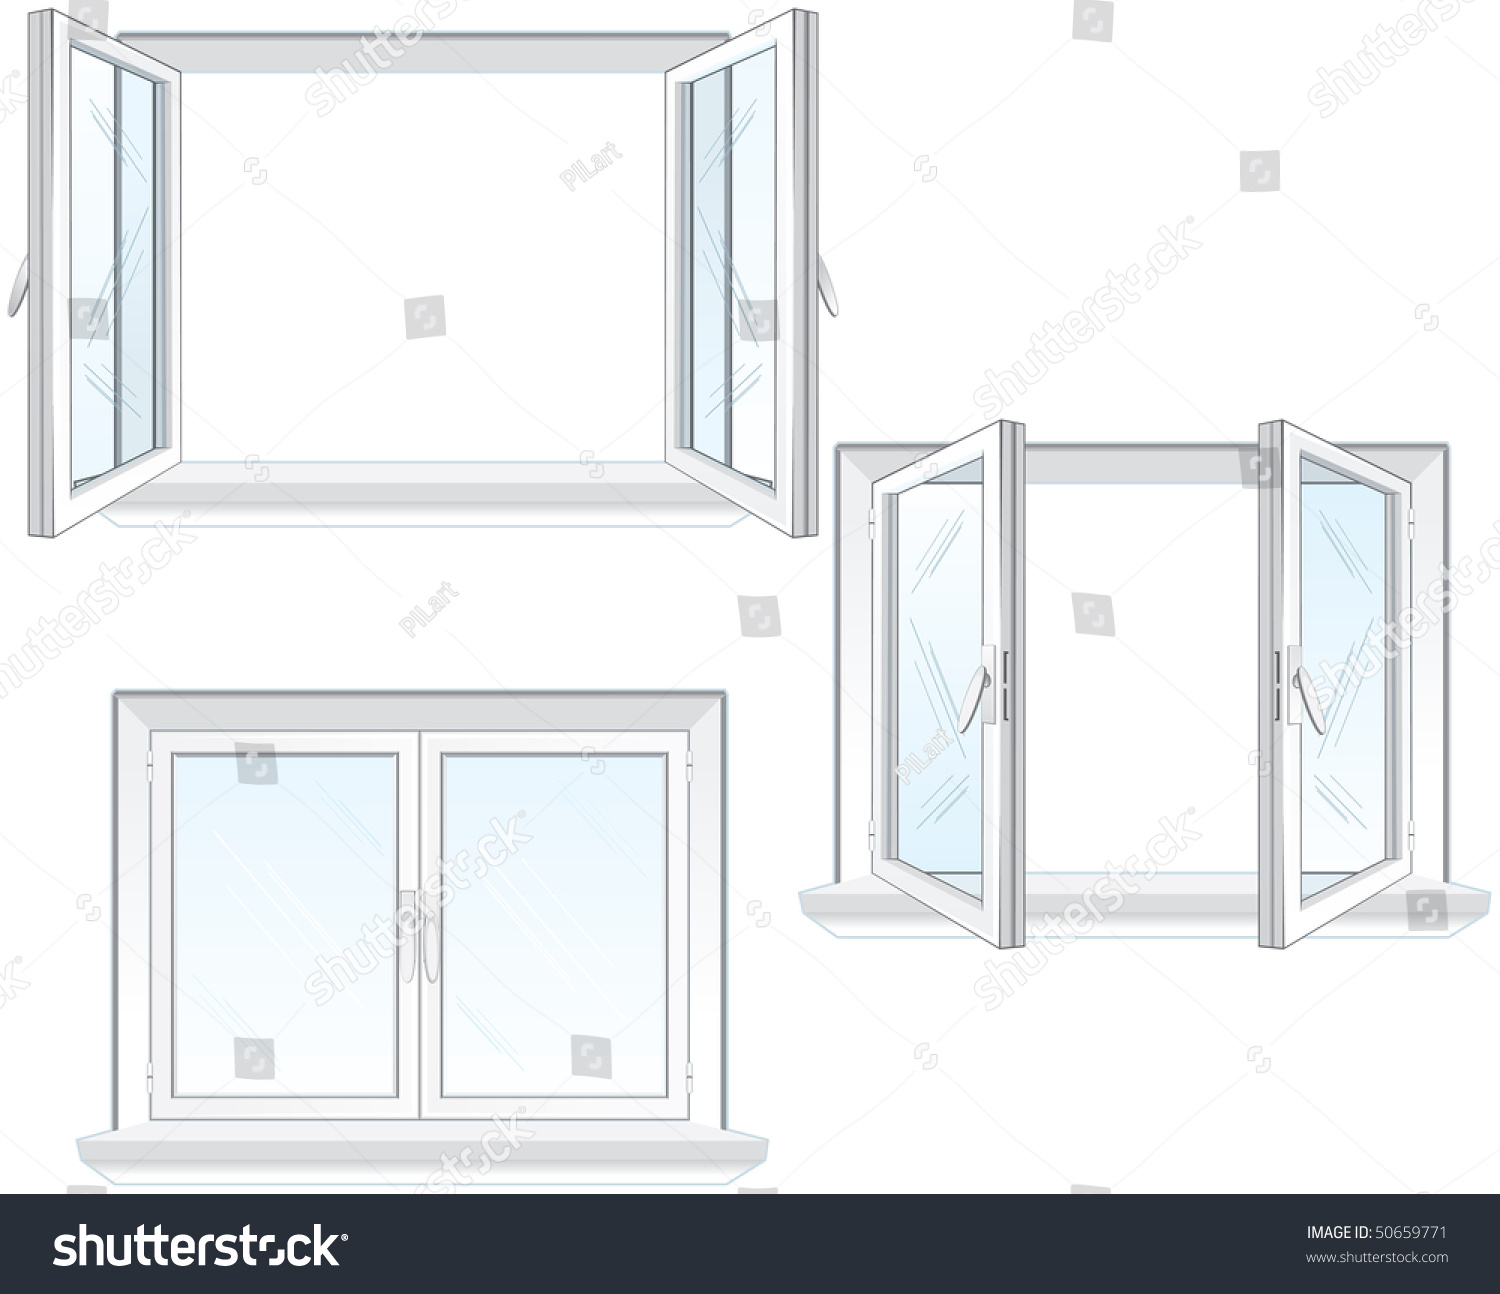 Closed Window Frame : Opened and closed window frame vector illustration